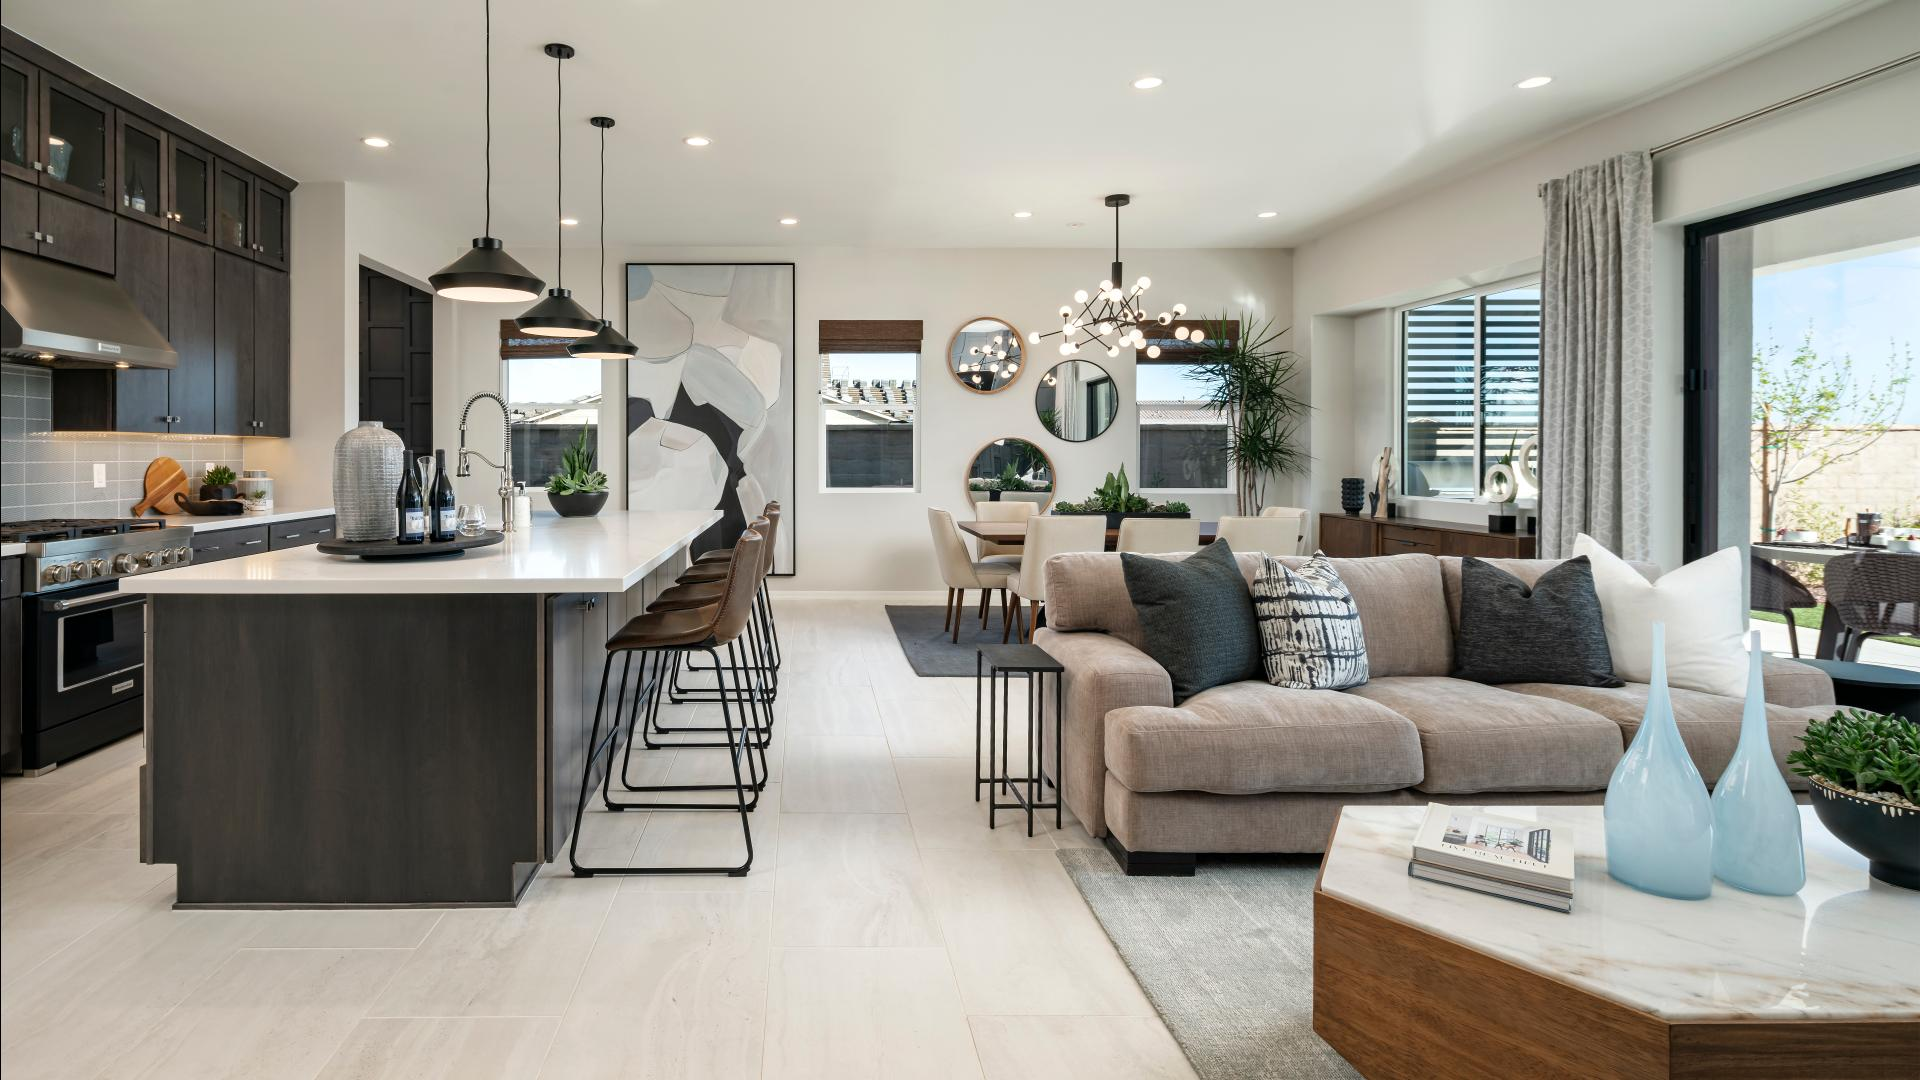 Award-winning home designs with luxurious included features